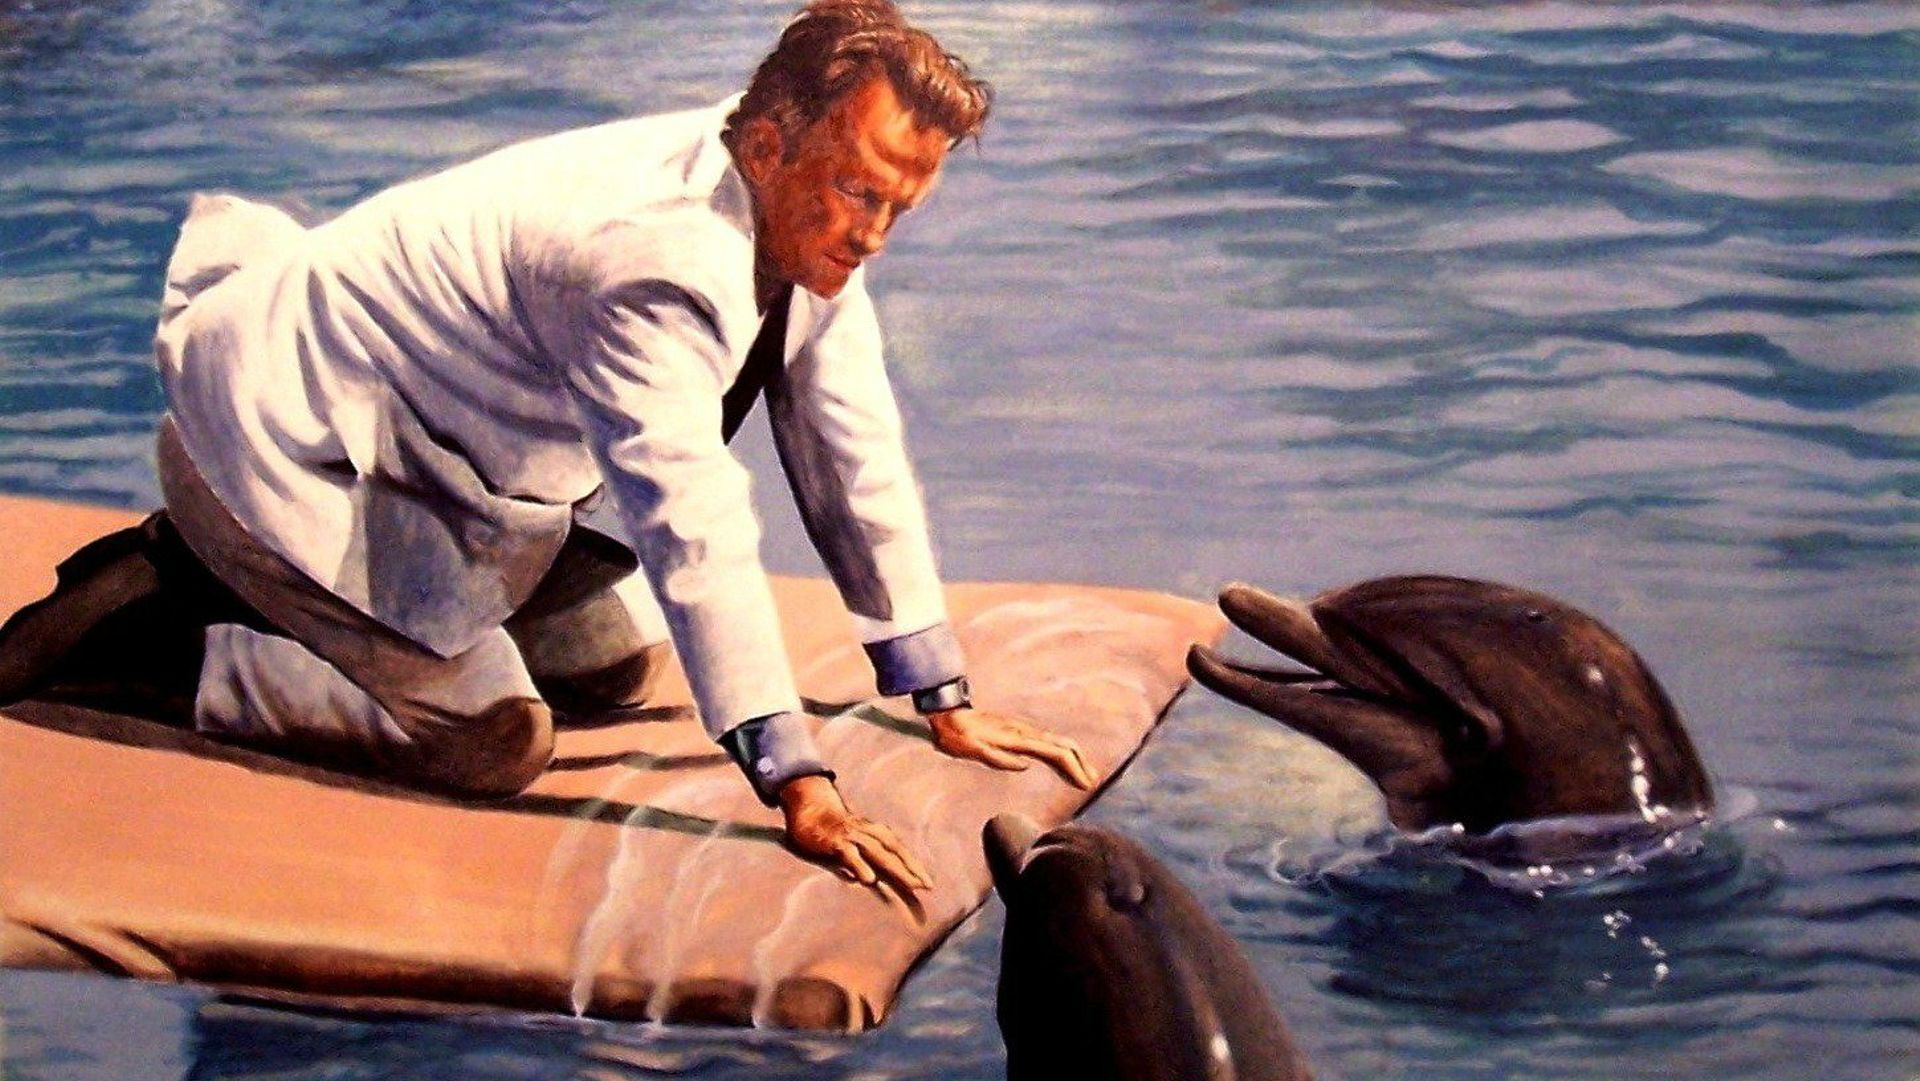 George C. Scott with talking dolphins in The Day of the Dolphin (1973)